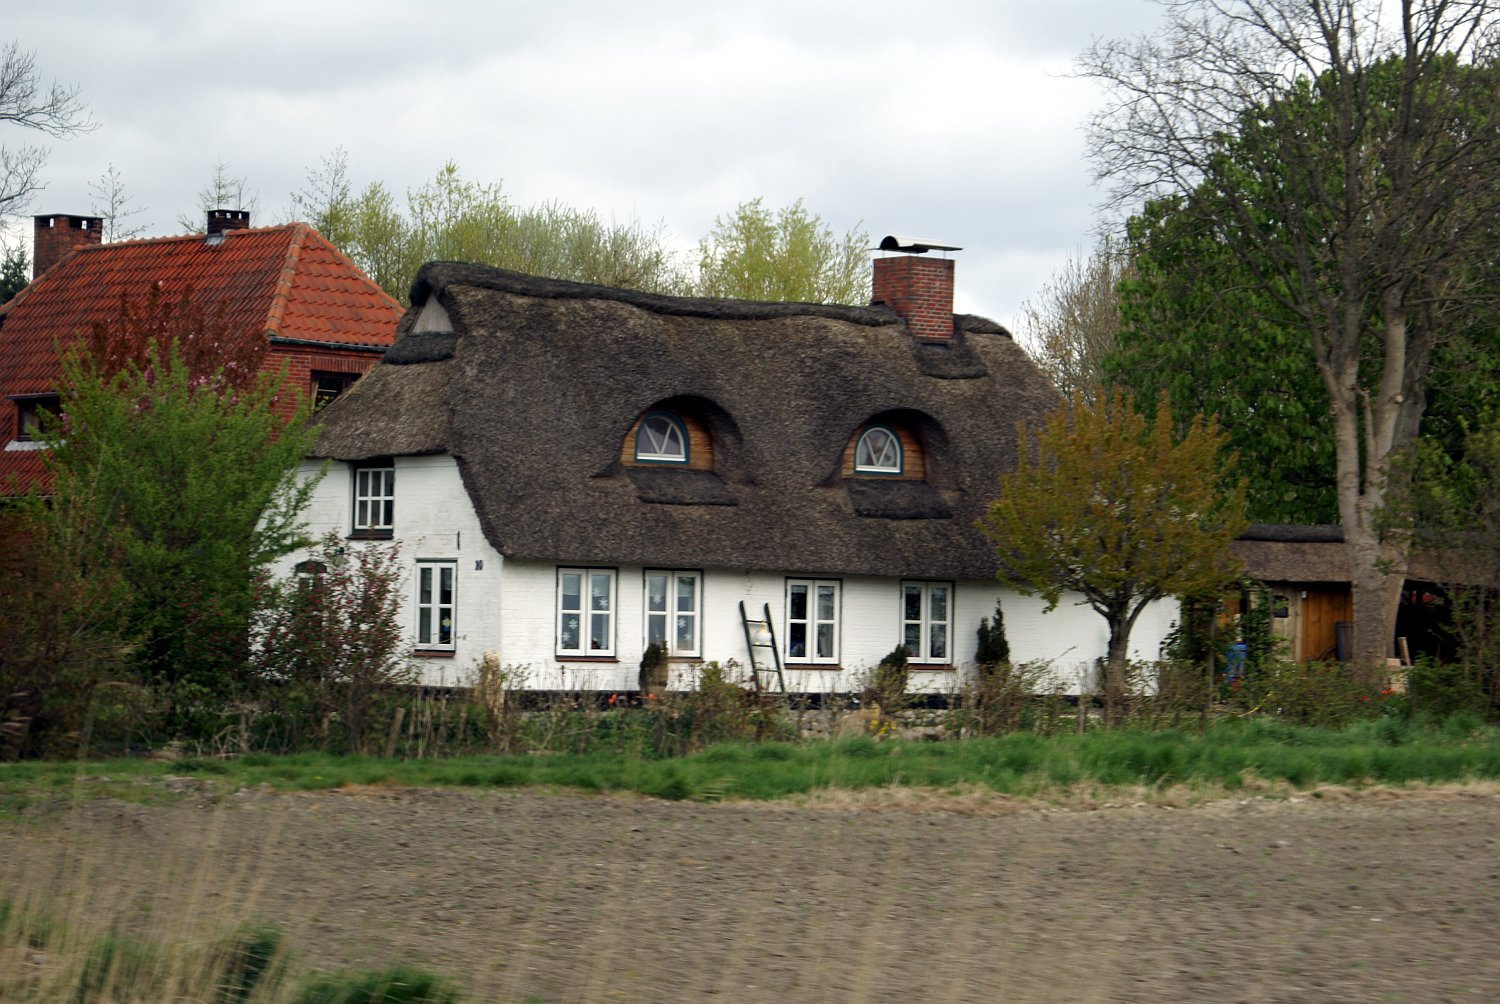 Things You Should Know About Owning a Thatched Roof Home